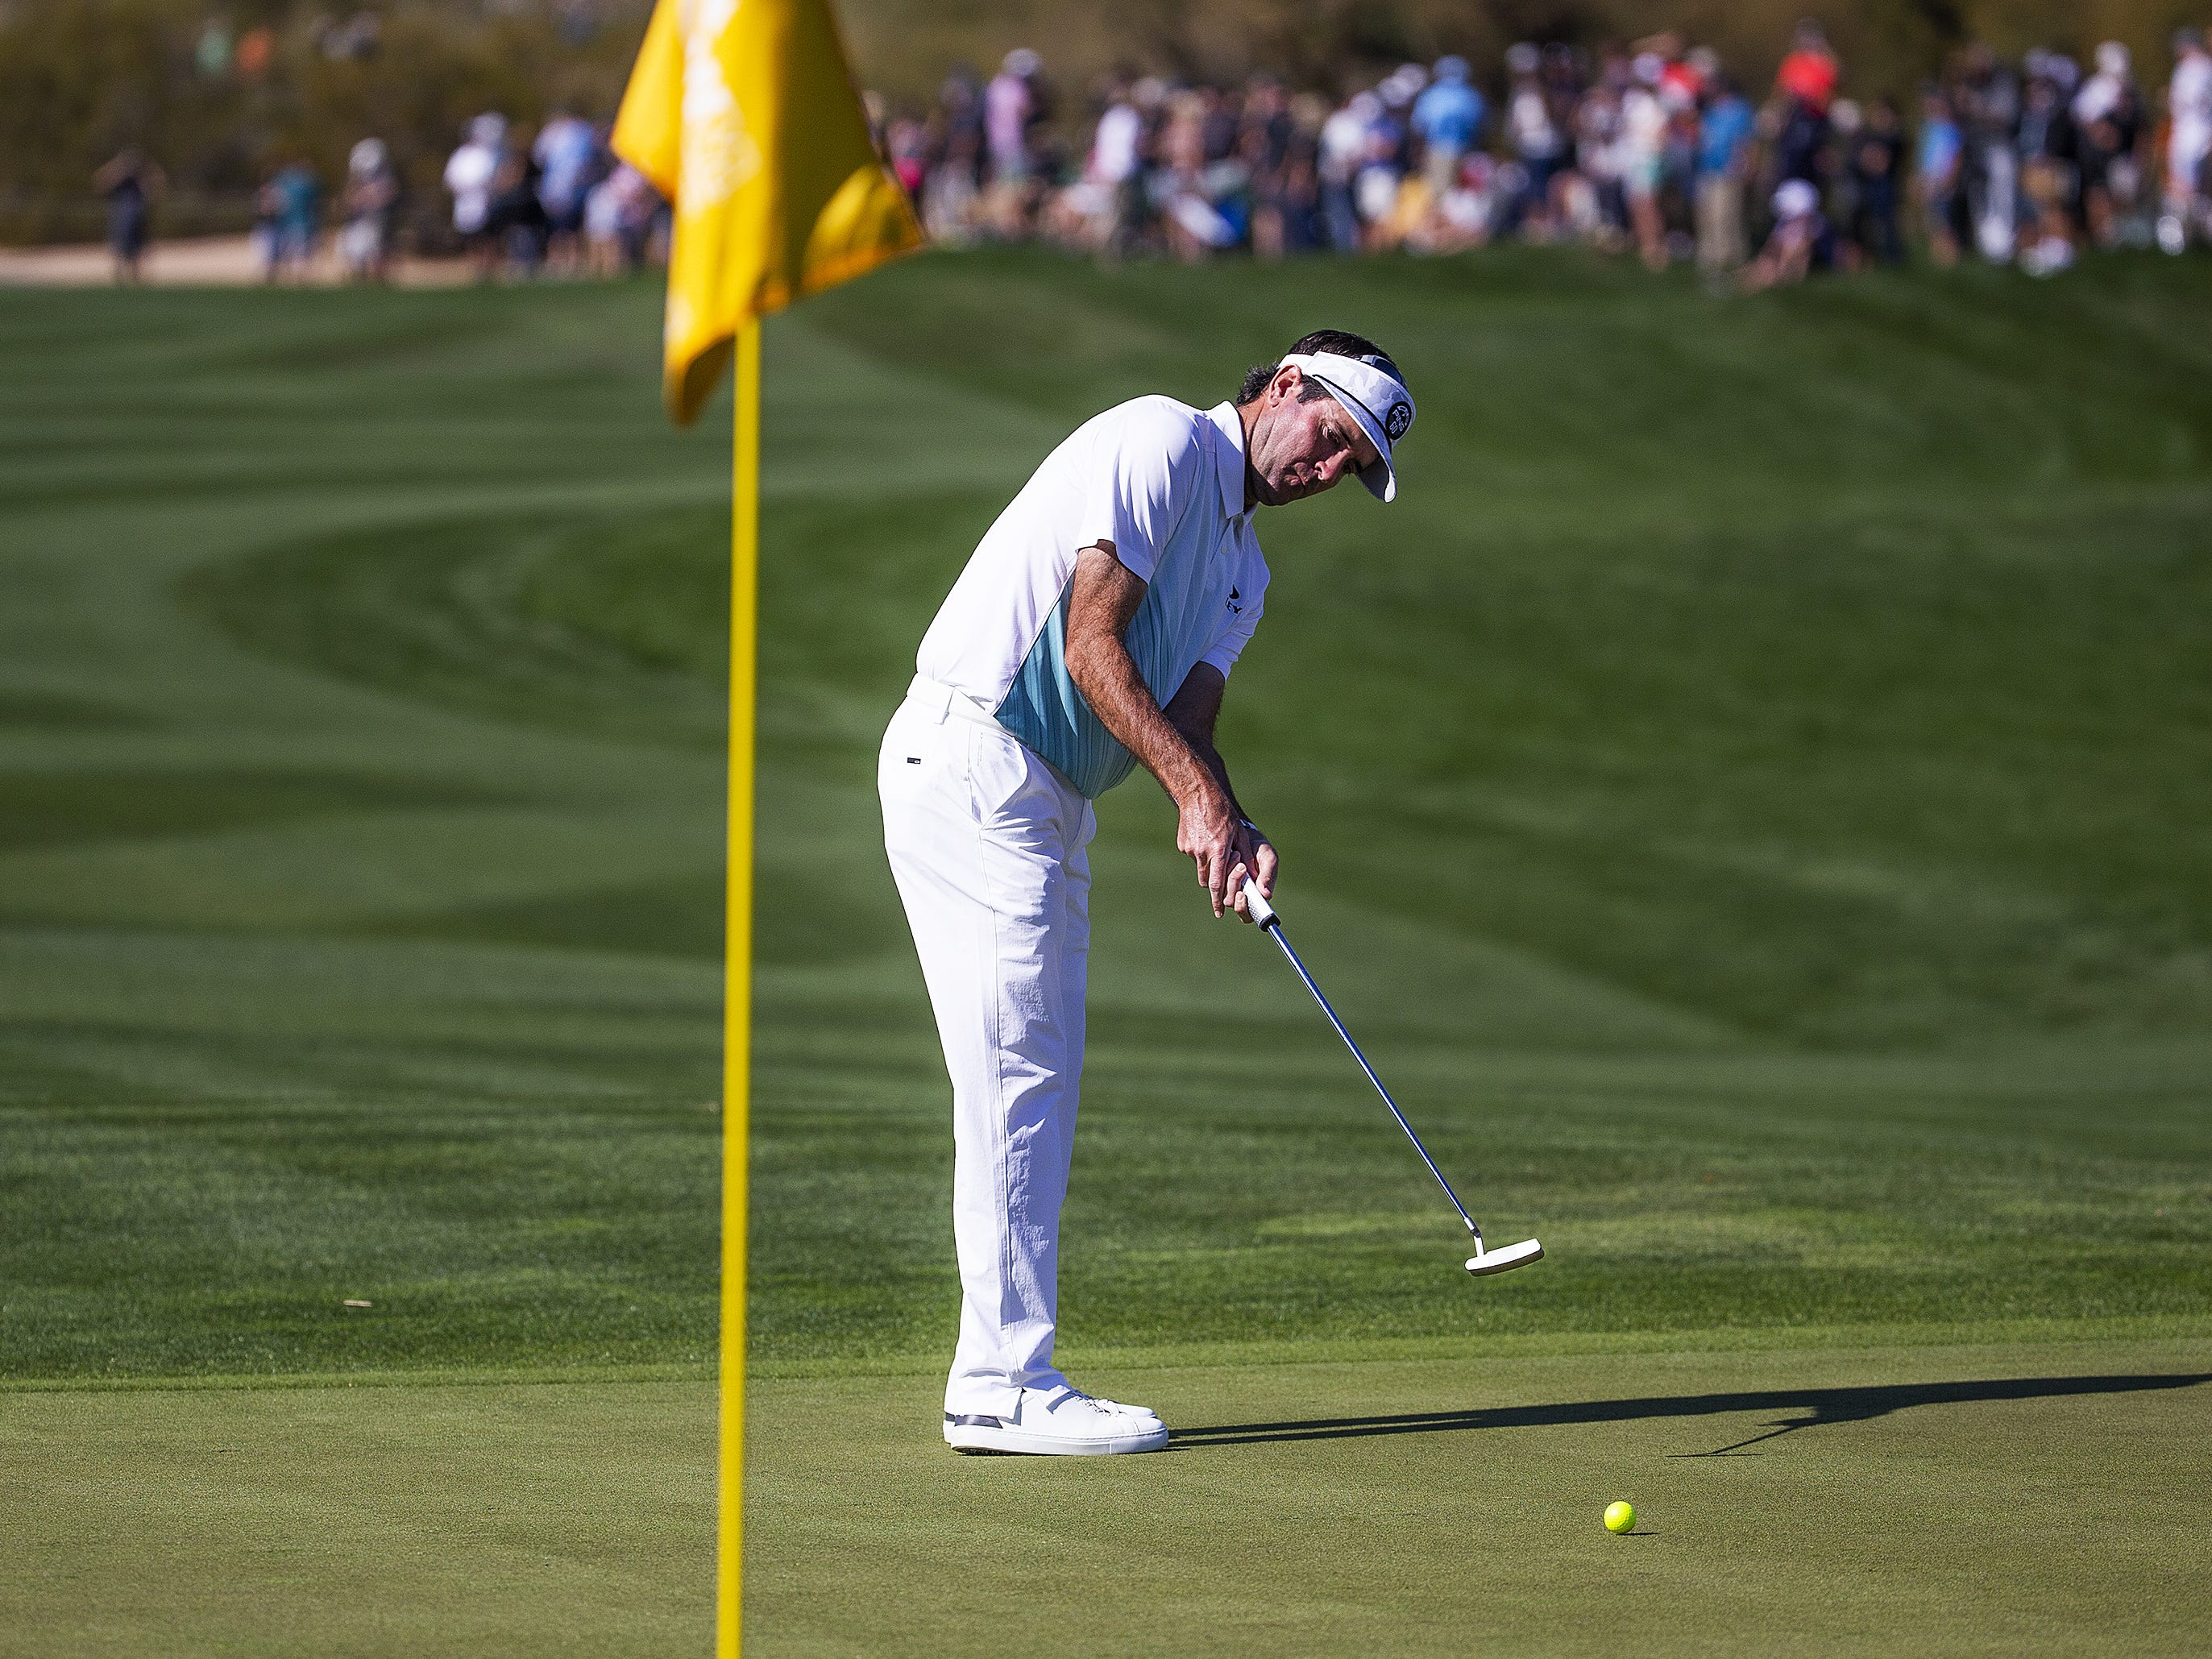 Bubba Watson putts on the 9th hole during the second round of the Waste Management Phoenix Open at the TPC Scottsdale, Friday, February 1, 2019.  When Watson finished his round he was in second place at 9 under par.